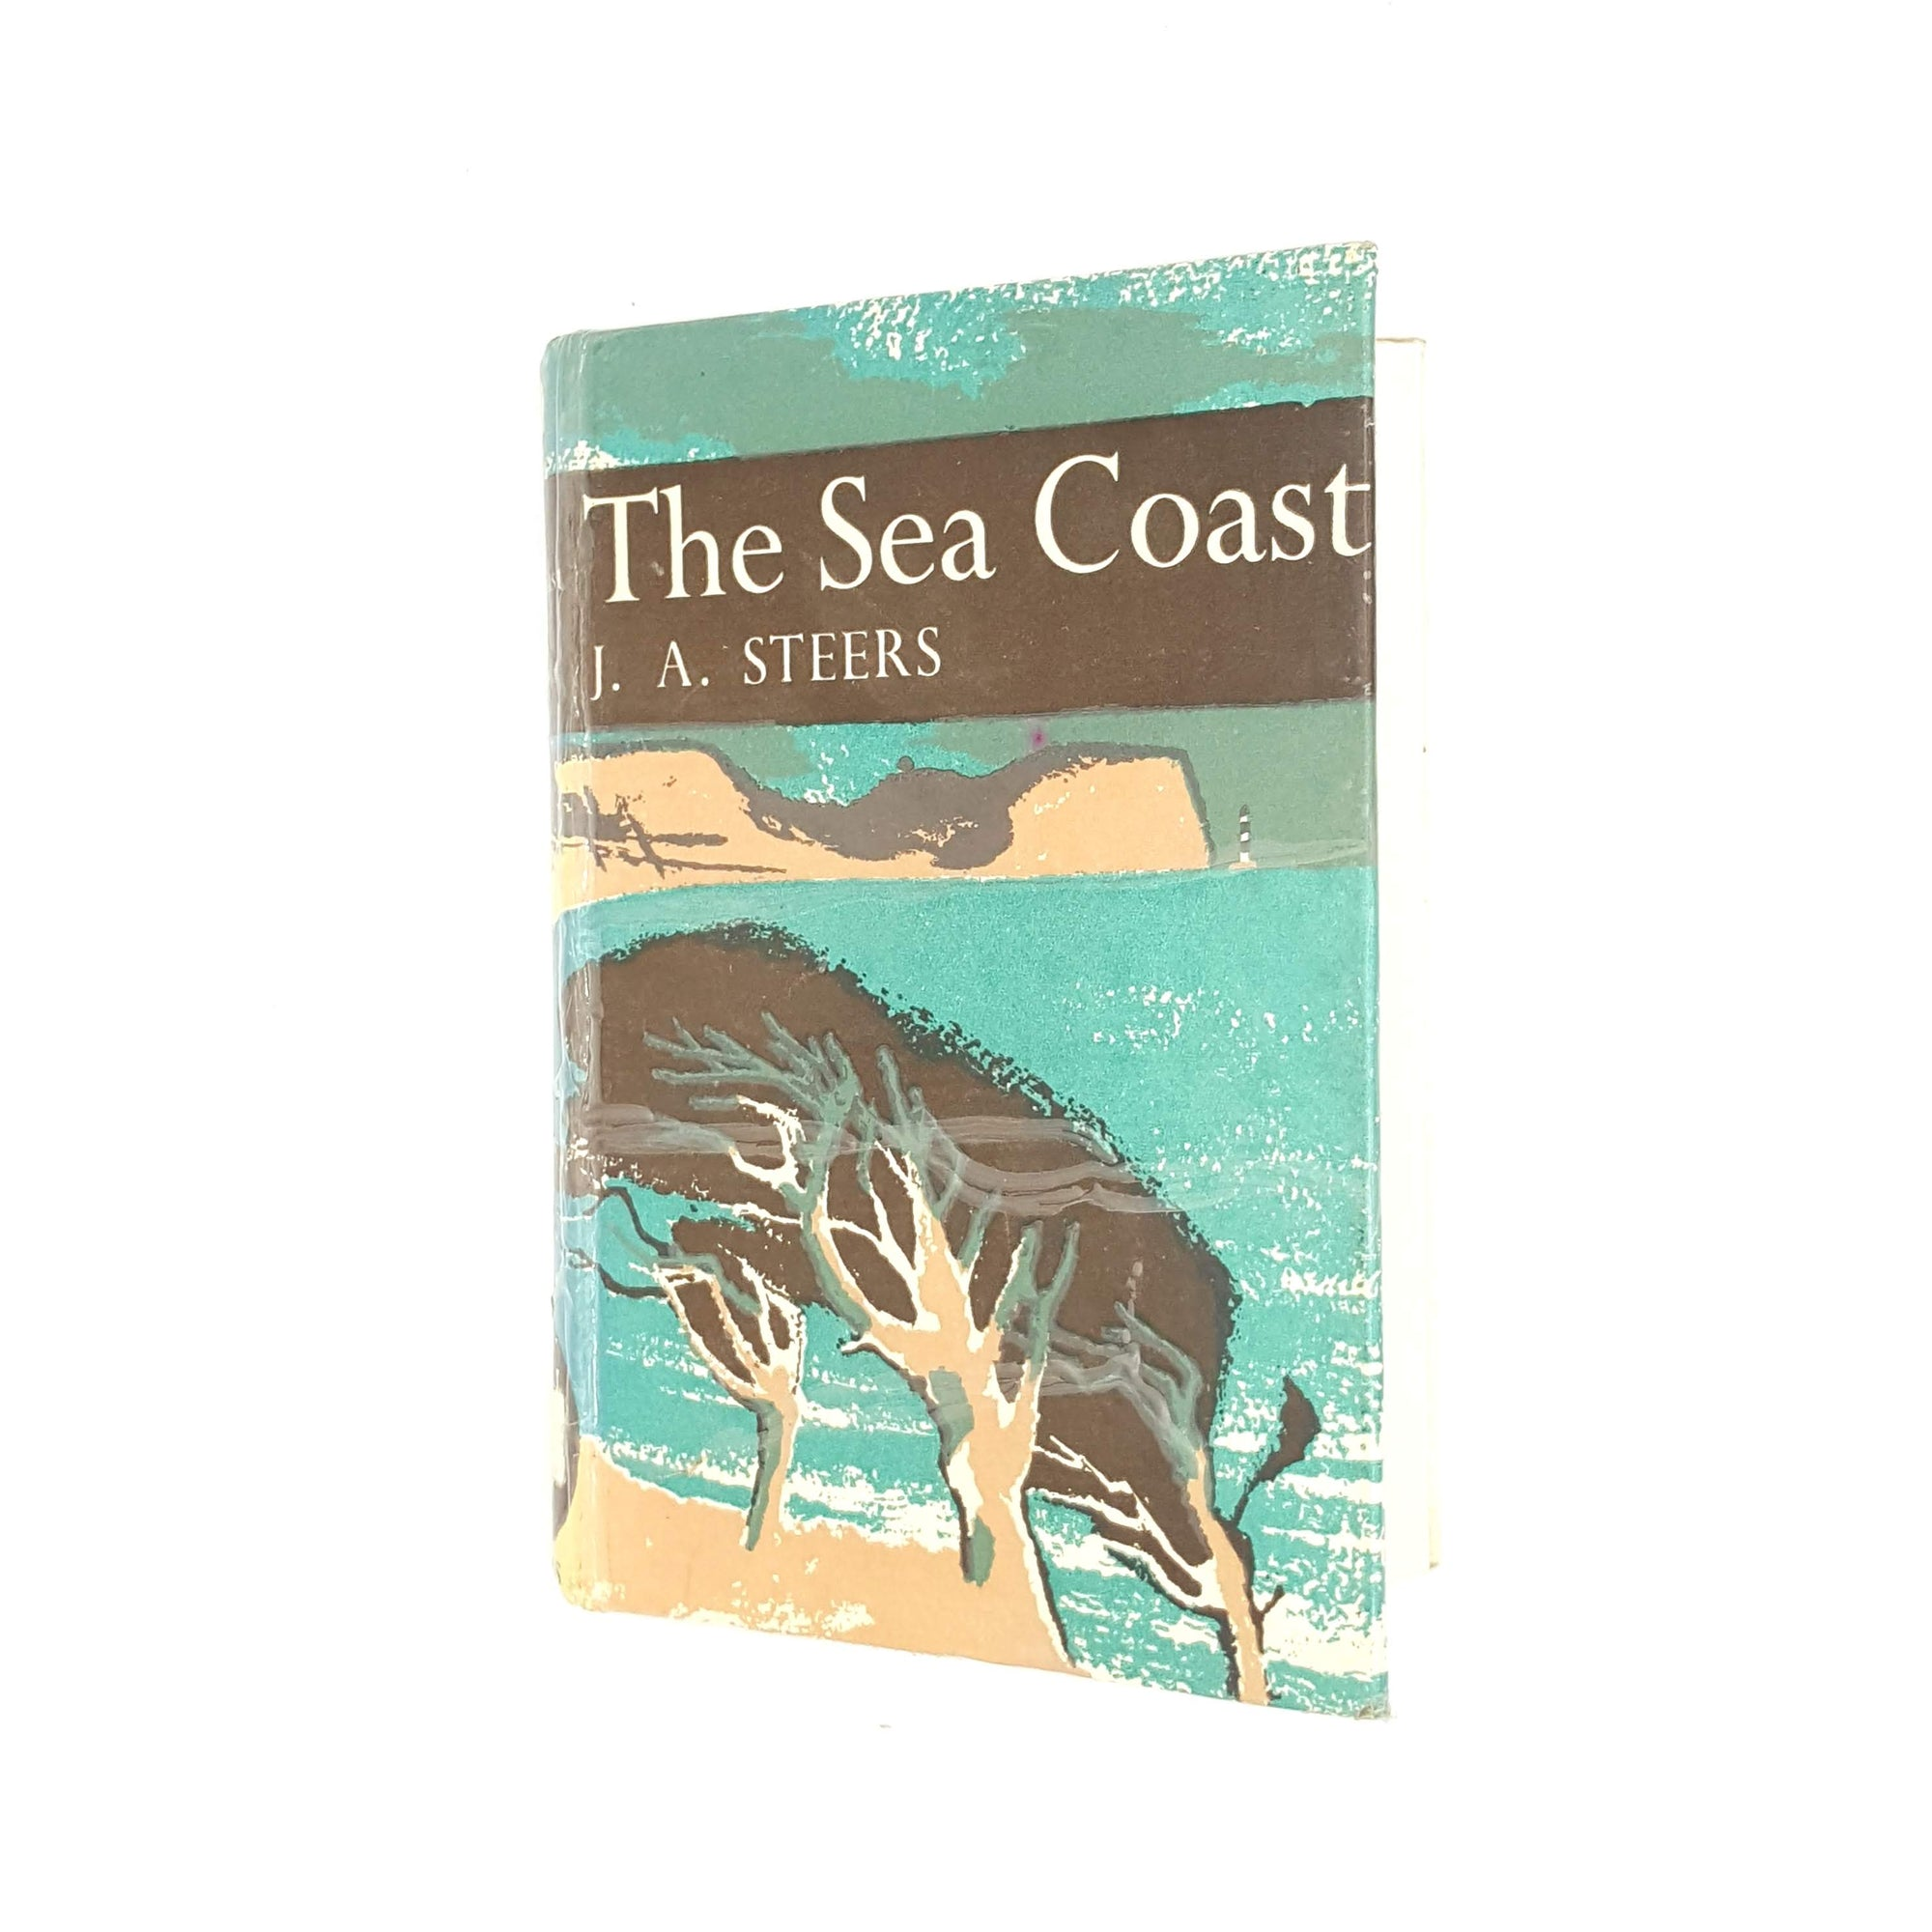 The Sea Coast by J. A. Steers 1972